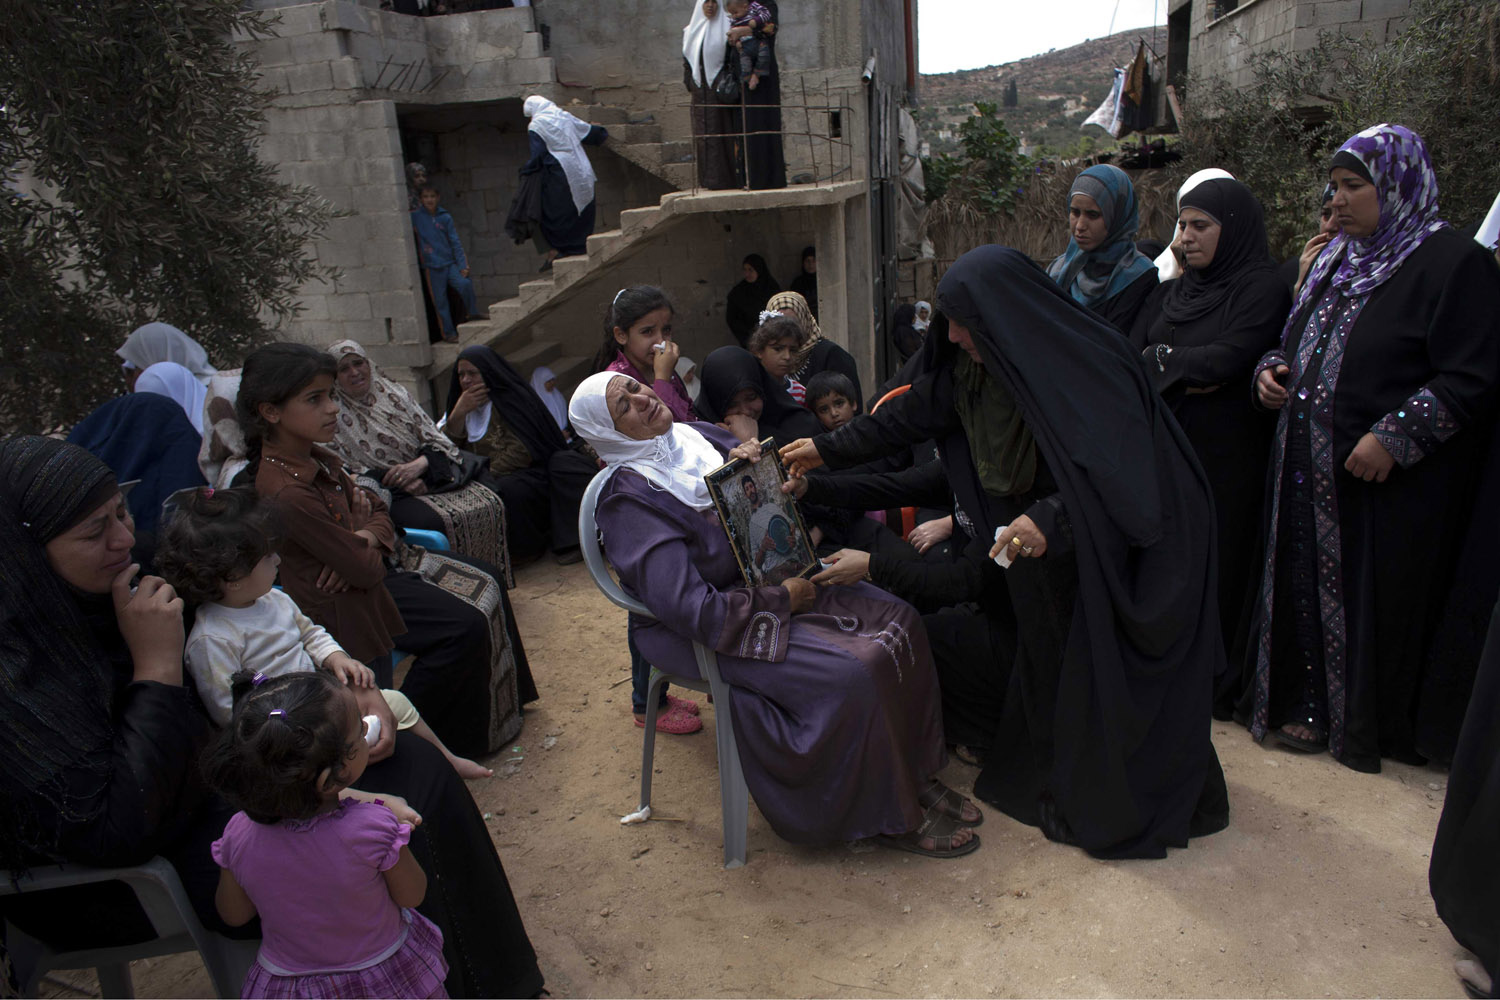 September 24, 2011. Palestinian woman Lafata Achemed  Bedran, the mother of Issam Bedran, is comforted by a relative as  family members and friends mourn at the funeral of her son in the West Bank village of Qusra.